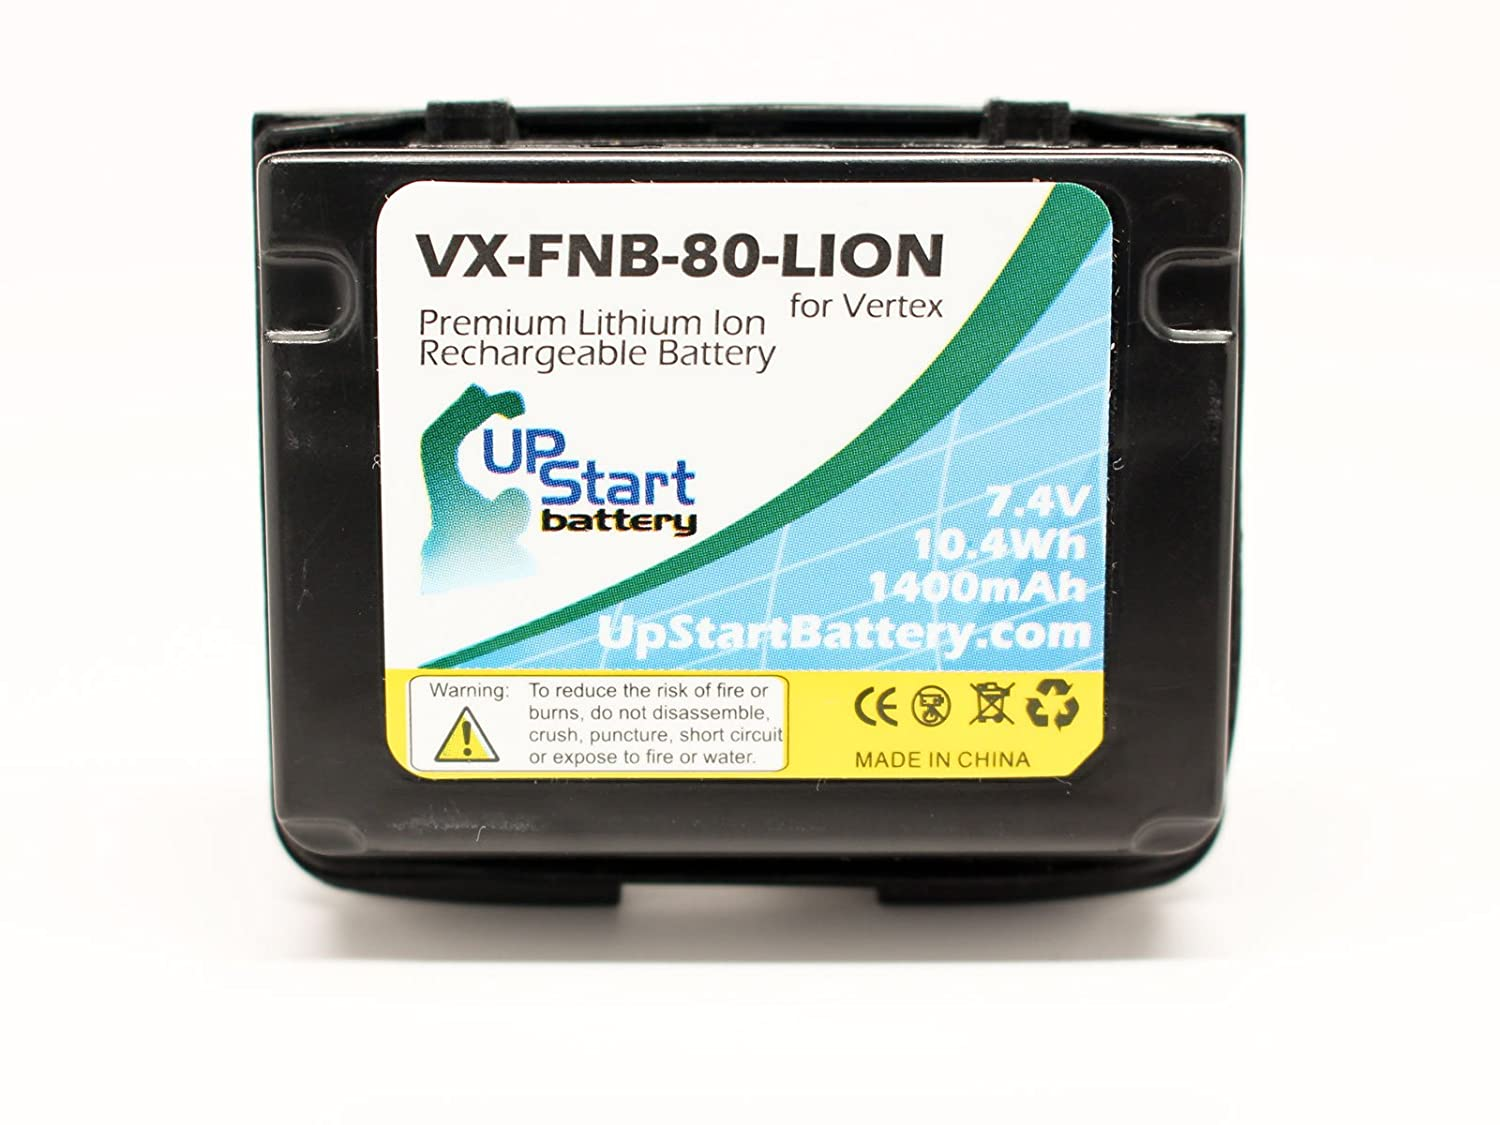 Yaesu FNB-80Li Two-Way Radio Battery Replacement (1400mAh) - Compatible with Yaesu FNB-58, FNB-58Li, FNB-80, FNB-80Li, VX-5, VX-5R, VX-5RS, VX-6, VX-6R, VX-6R/E, VX-7R, VX-7RB, VXA-700, VXA-710